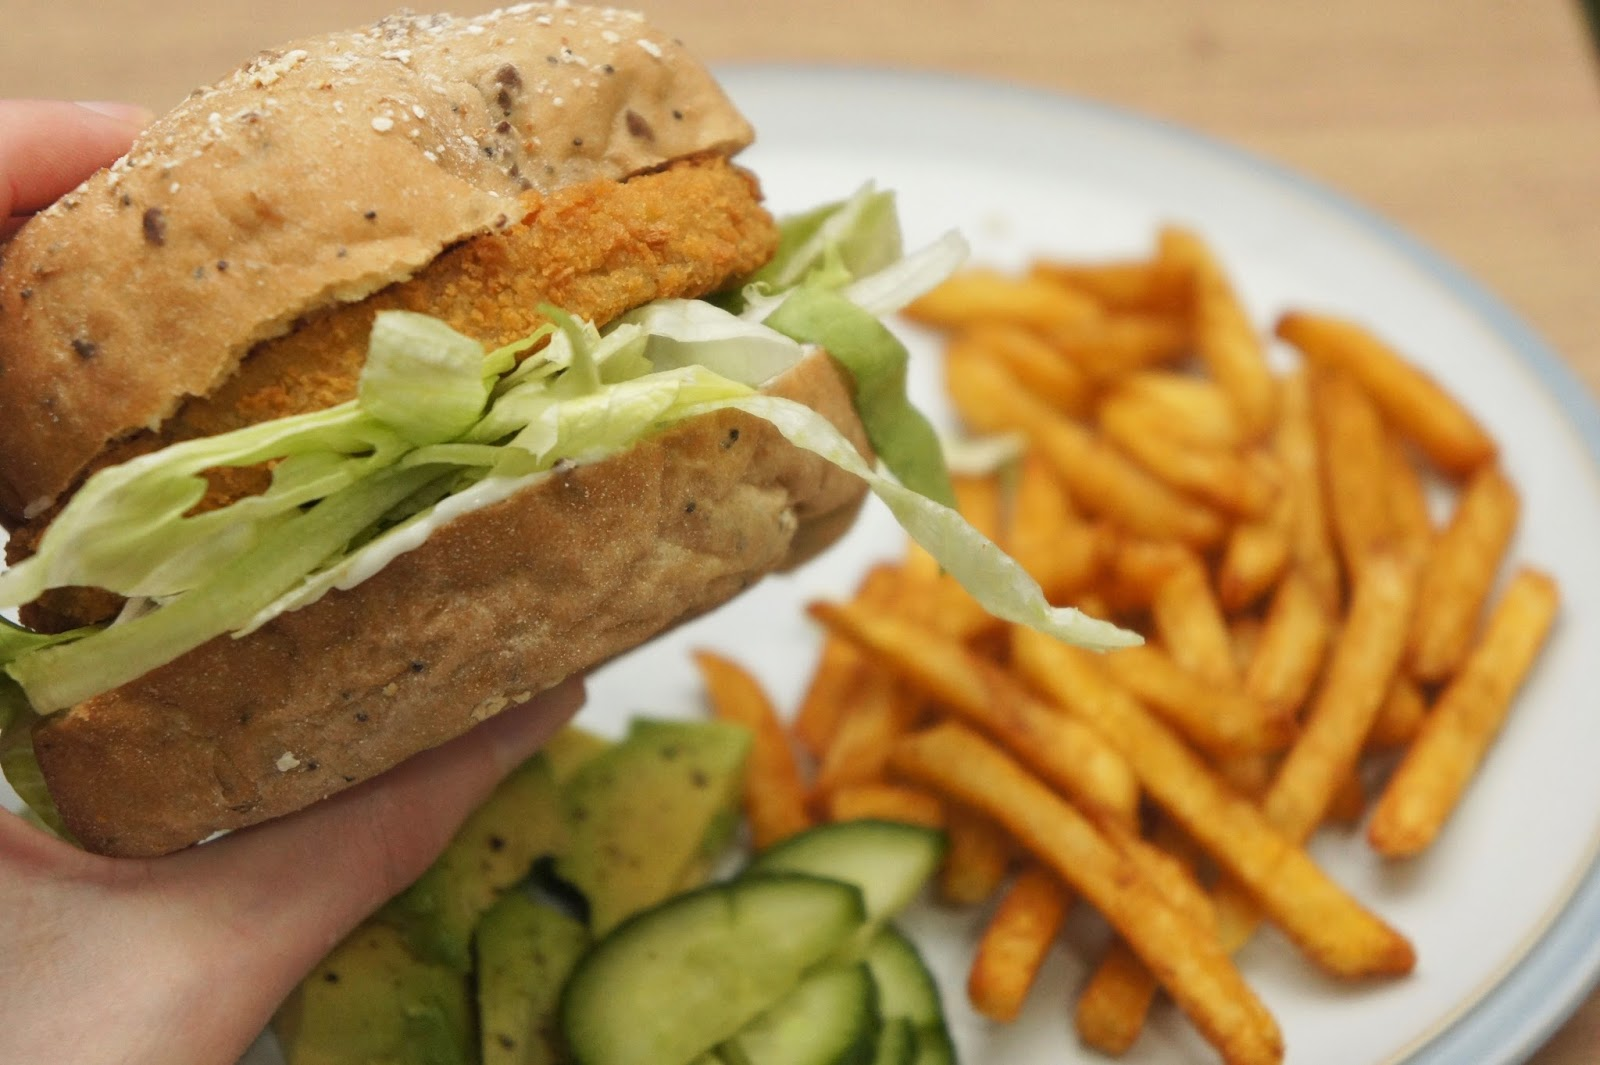 veganized chicken burger gluten free